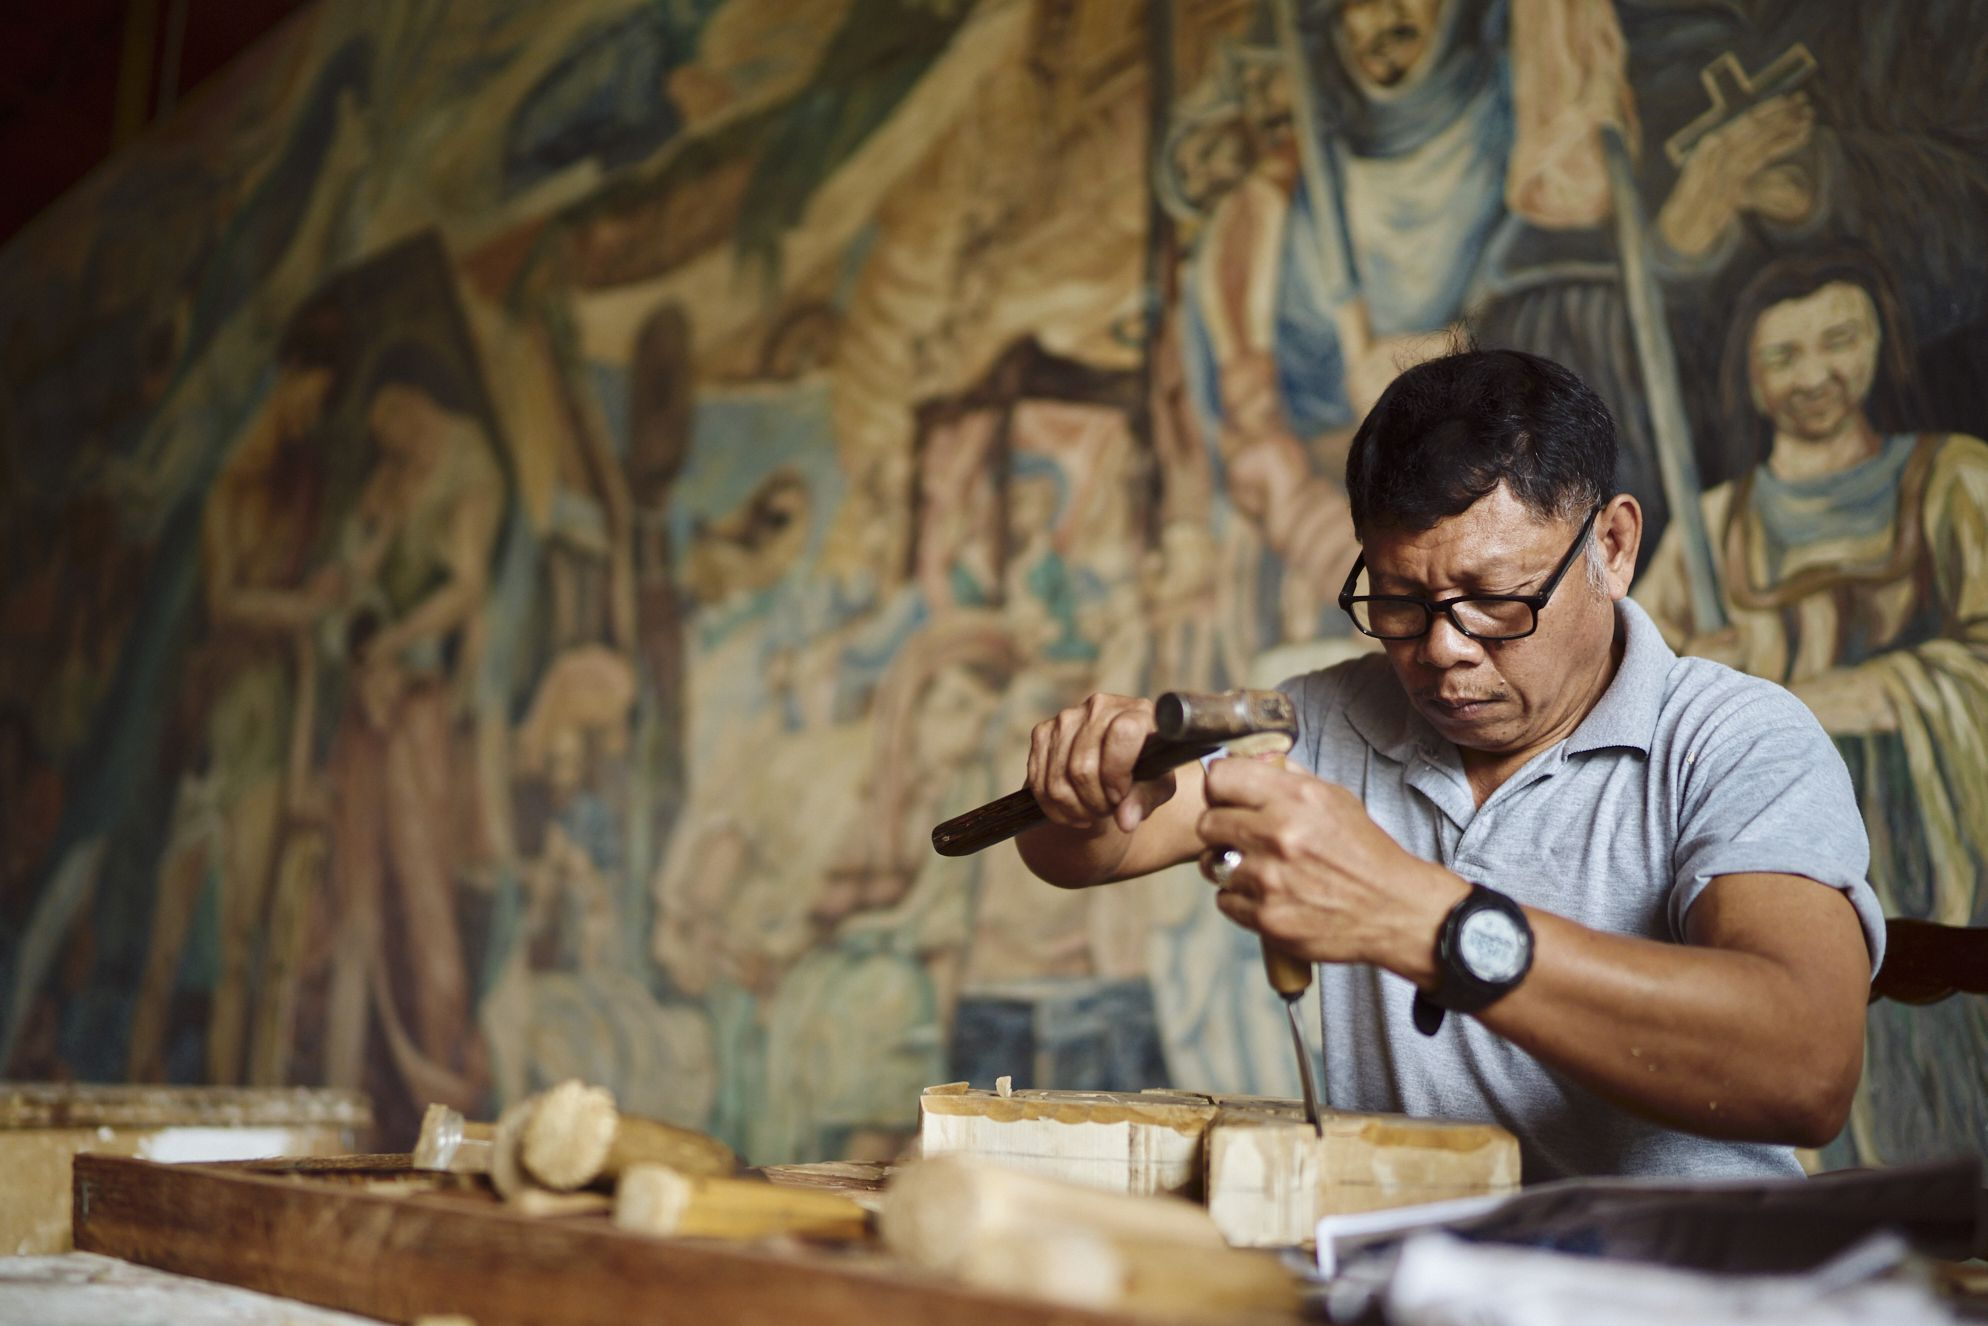 53-year-old Arnold Flores has been working as a sculptor in Las Casas Filipinas de Acuzar for four years, creating intricate hand-carved wood and styro pieces